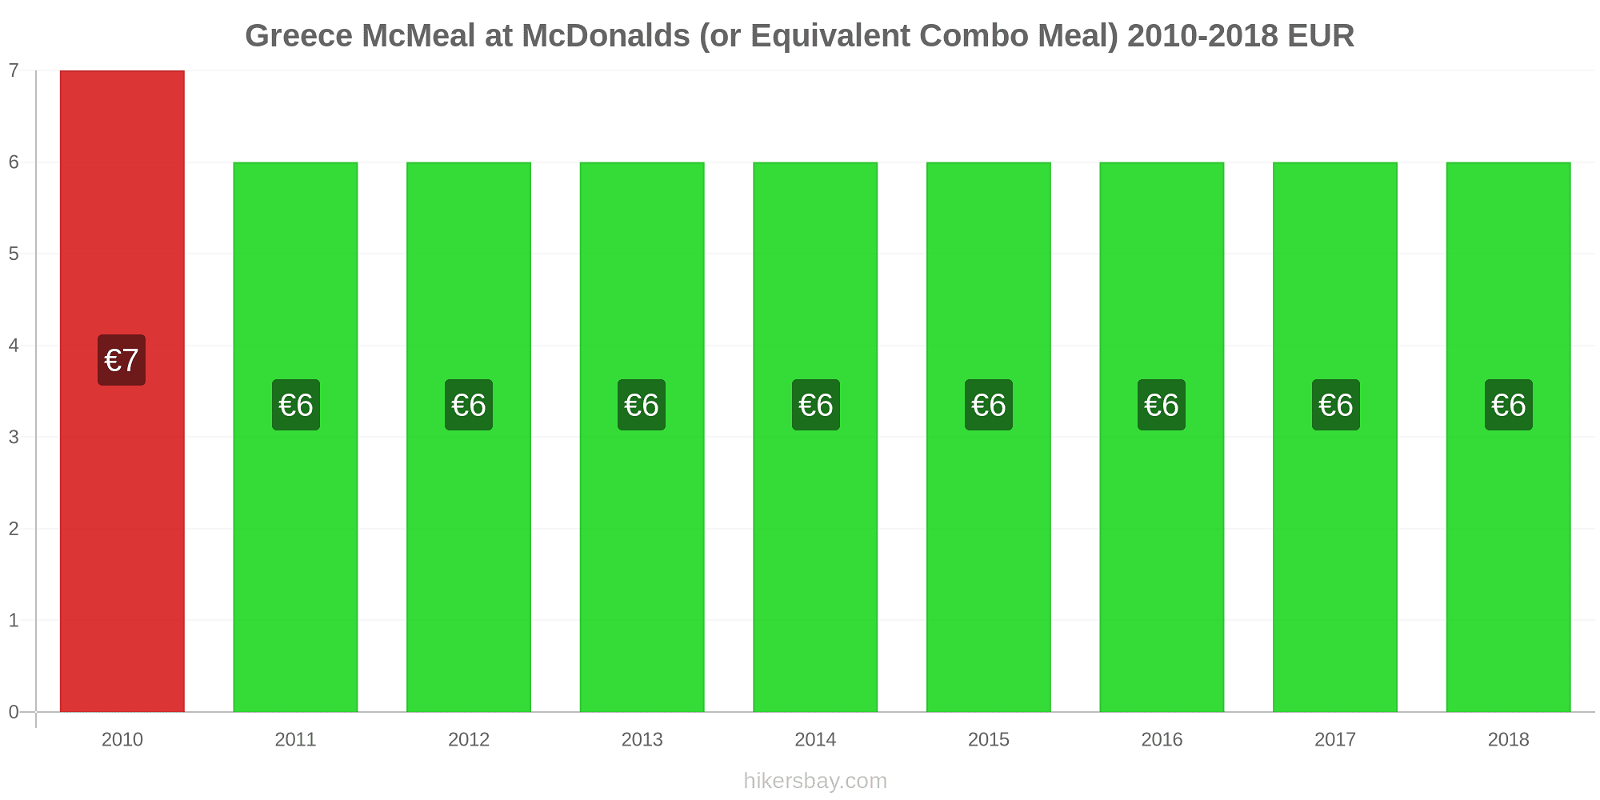 Greece price changes McMeal at McDonalds (or Equivalent Combo Meal) hikersbay.com